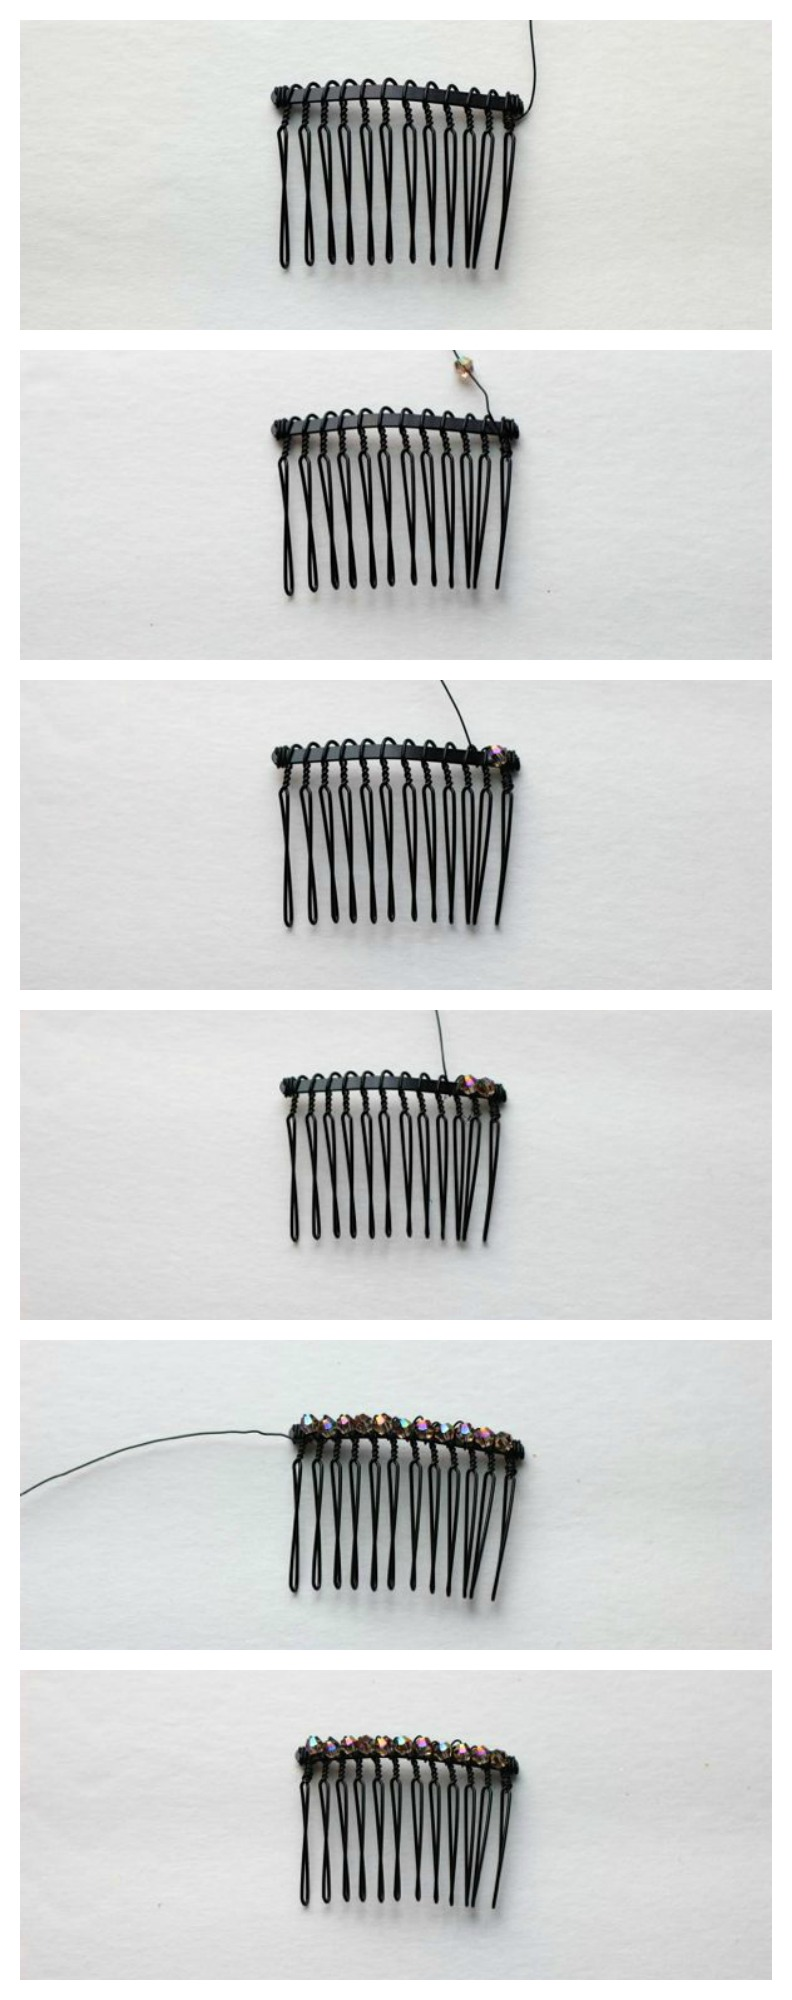 steps to make a beaded hair accessory from www.alyssaandcarla.com